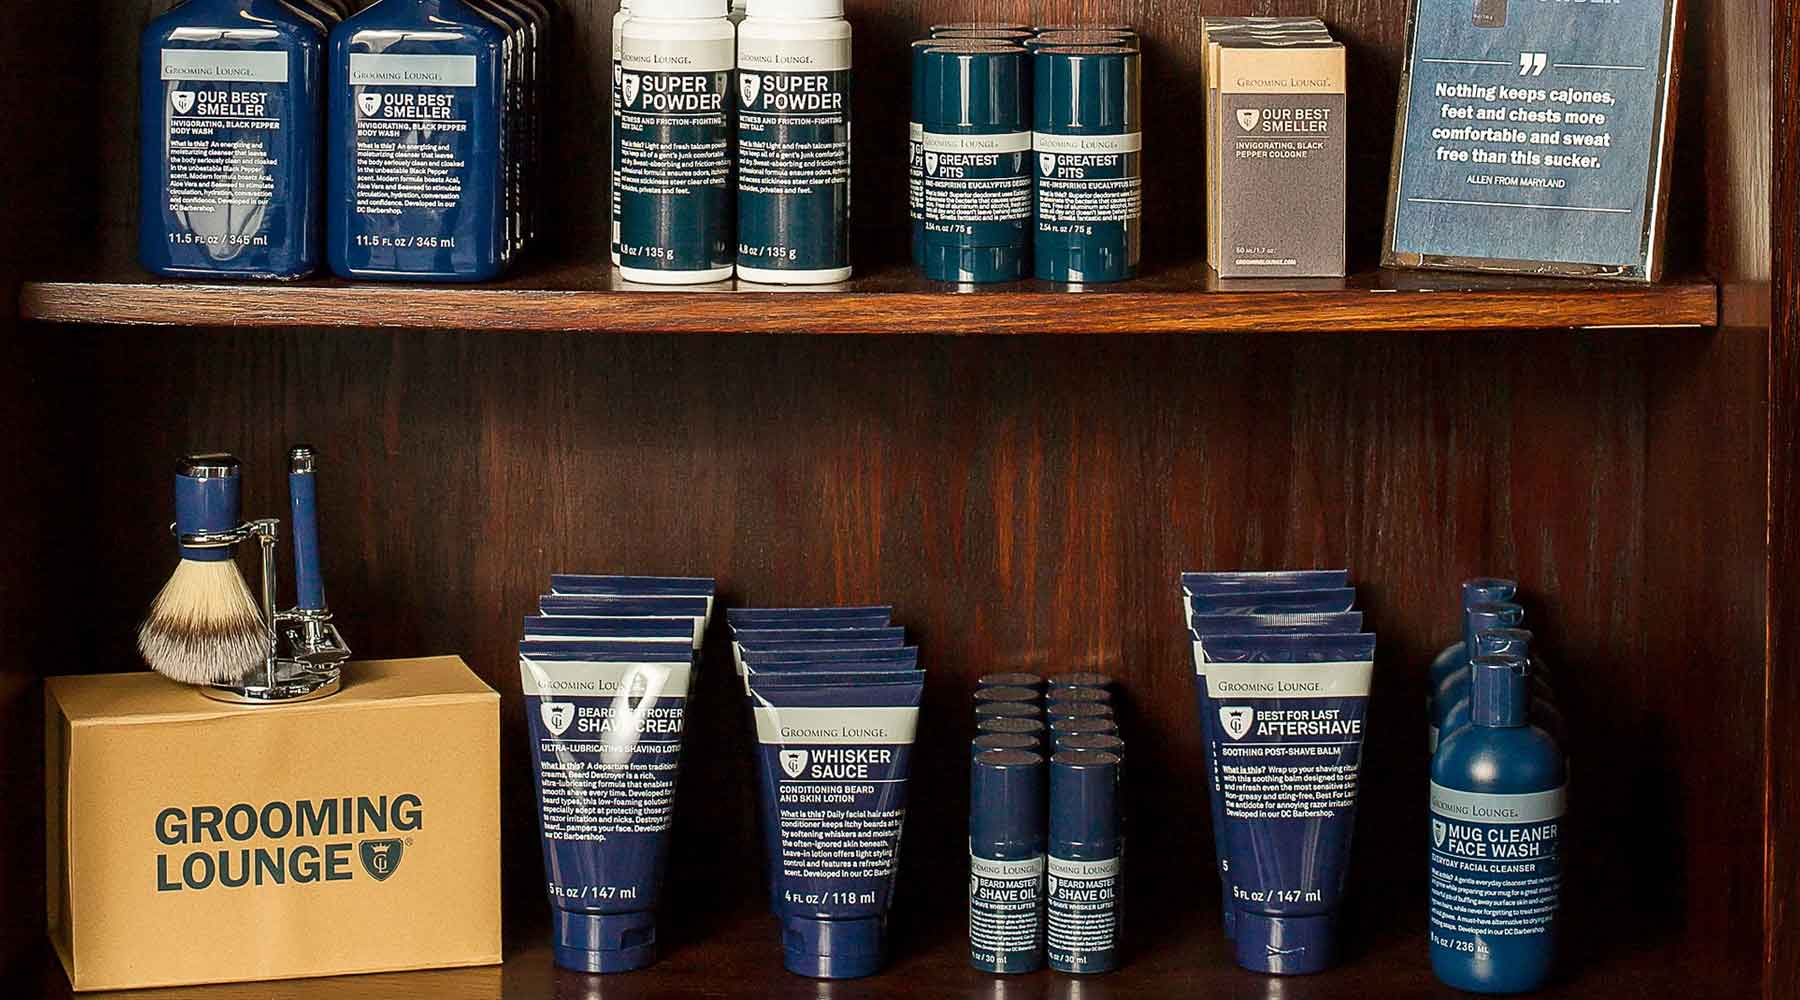 Grooming Lounge Skin Care